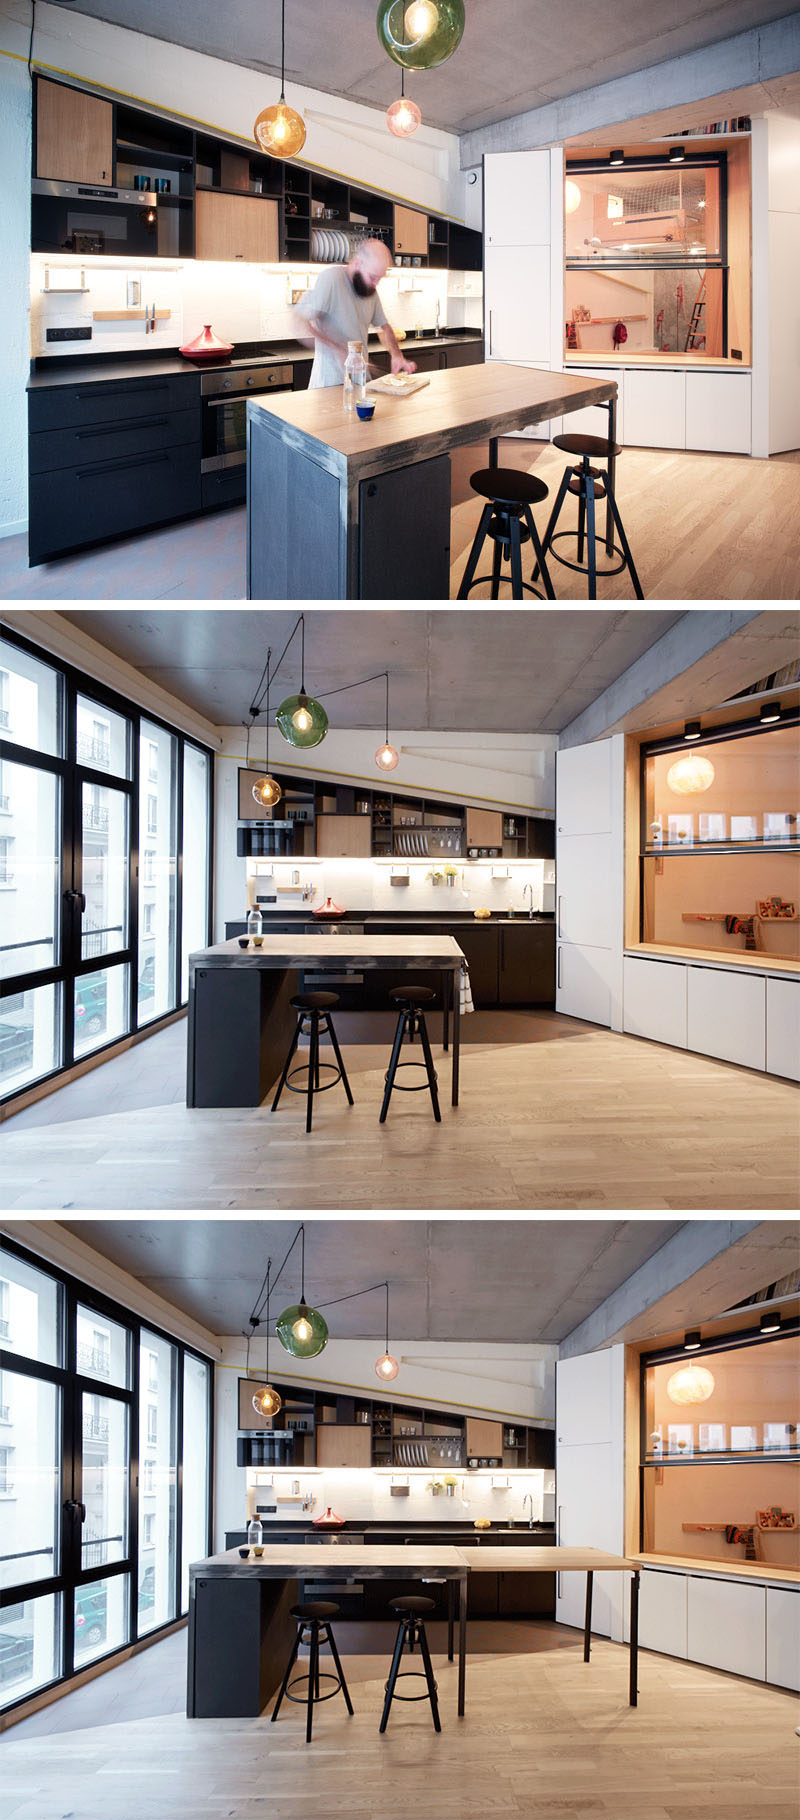 This modern kitchen has an island with an extendable countertop. #KitchenIsland #KitchenDesign